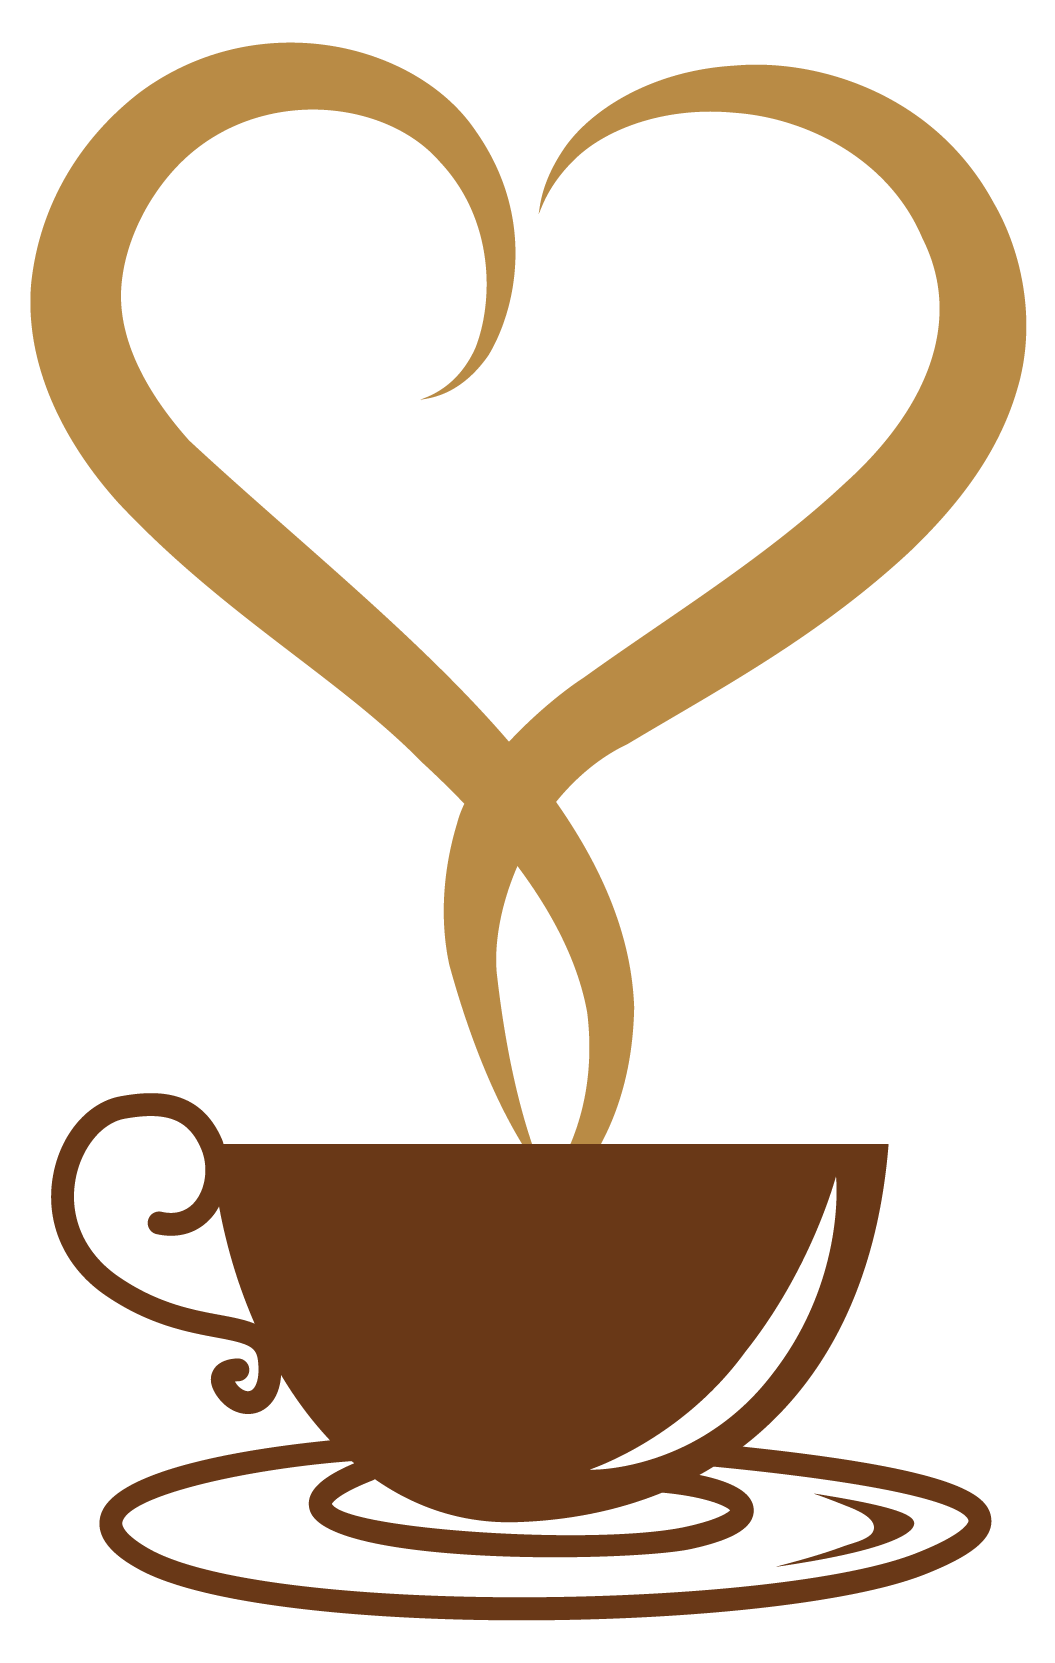 Coffee cup clipart station. Starbucks top pictures gallery